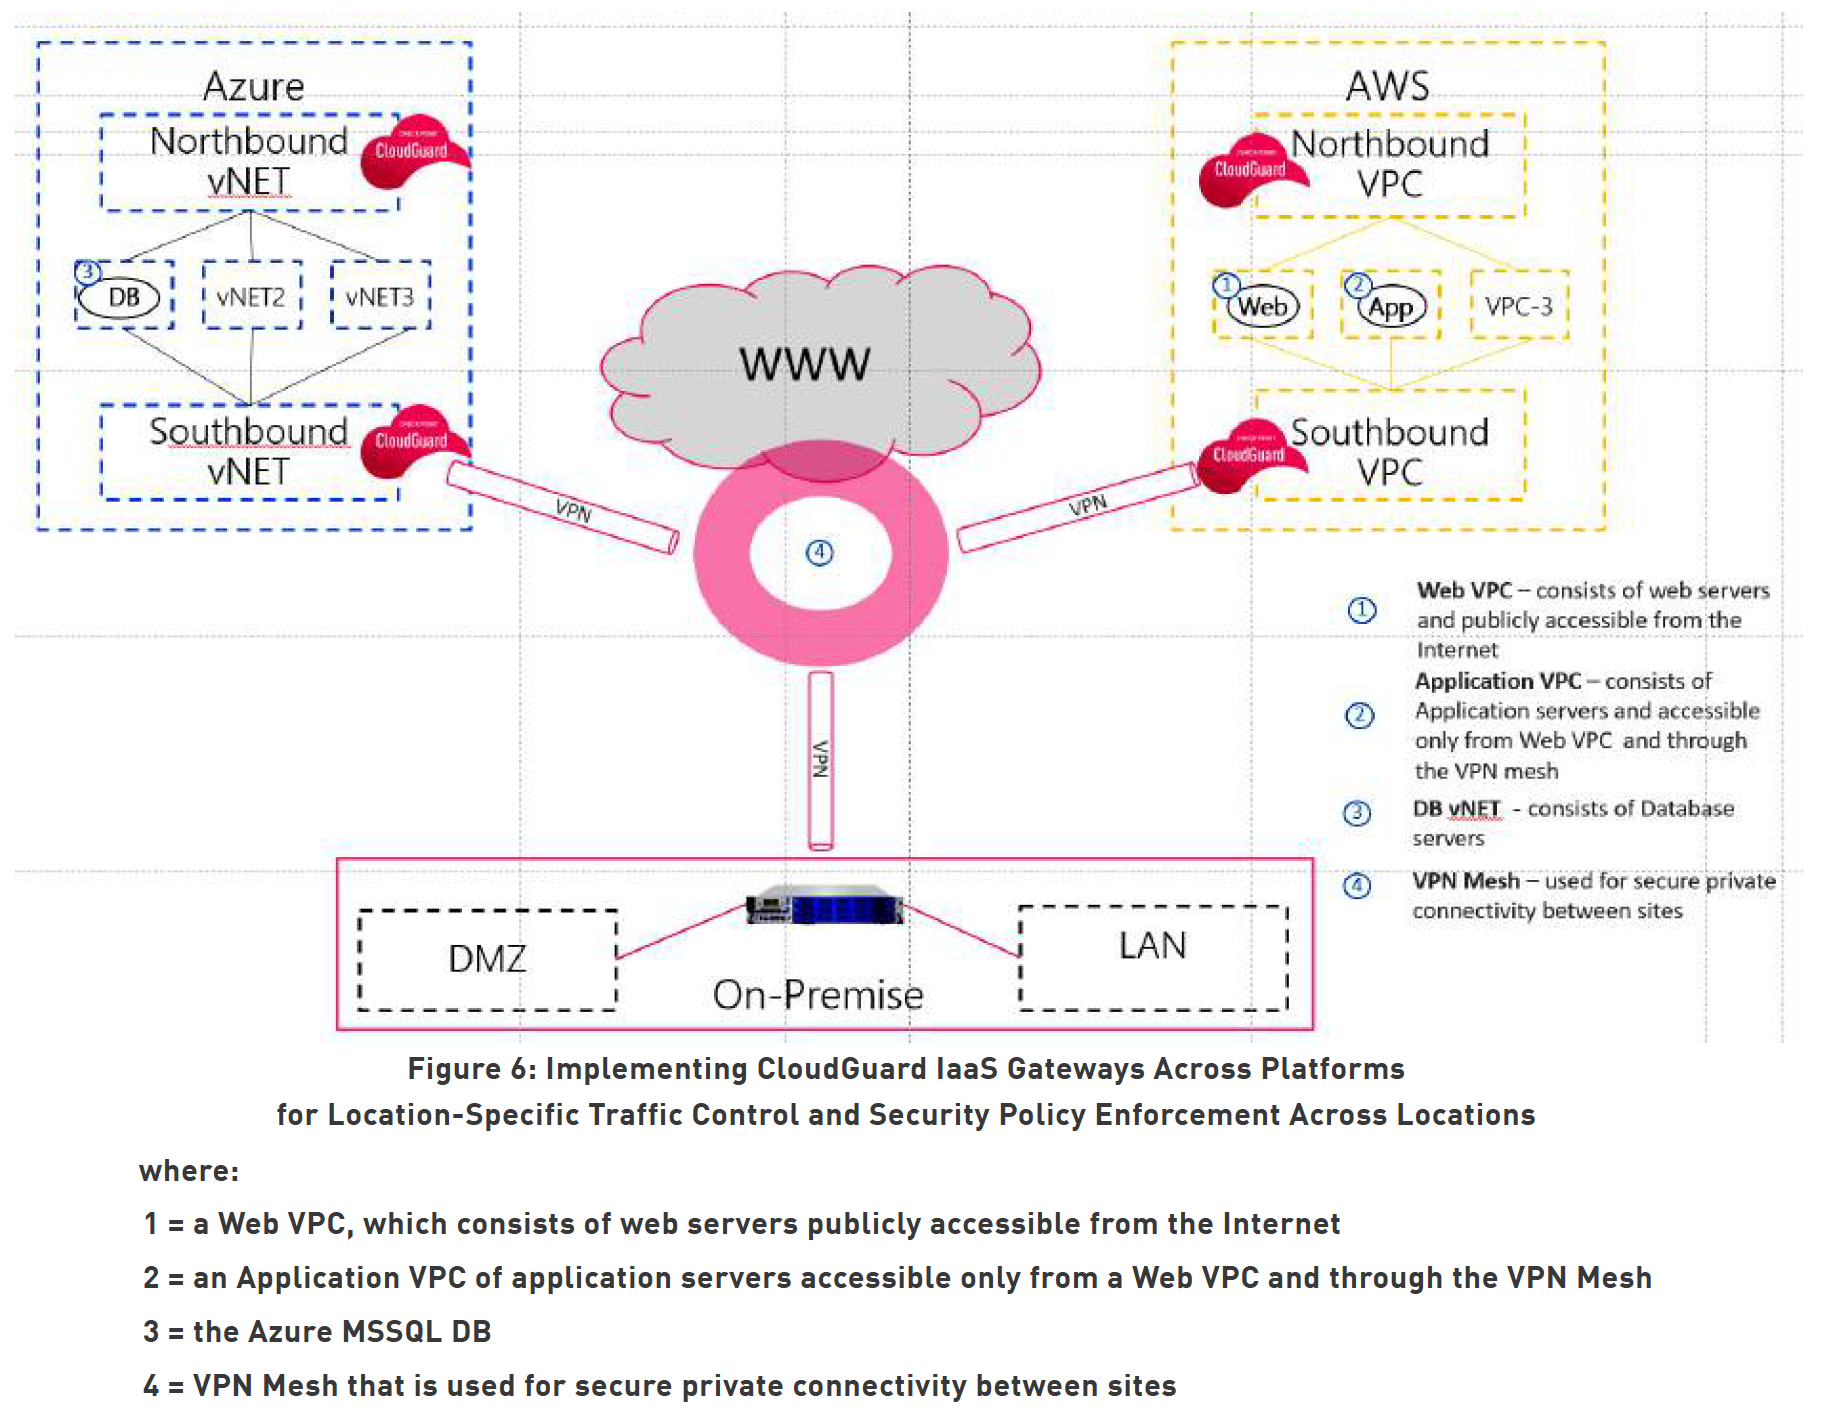 Figure 6: Implementing CloudGuard IaaS Gateways Across Platforms for Location-Specific Traffic Control and Security Policy Enforcement Across Locations